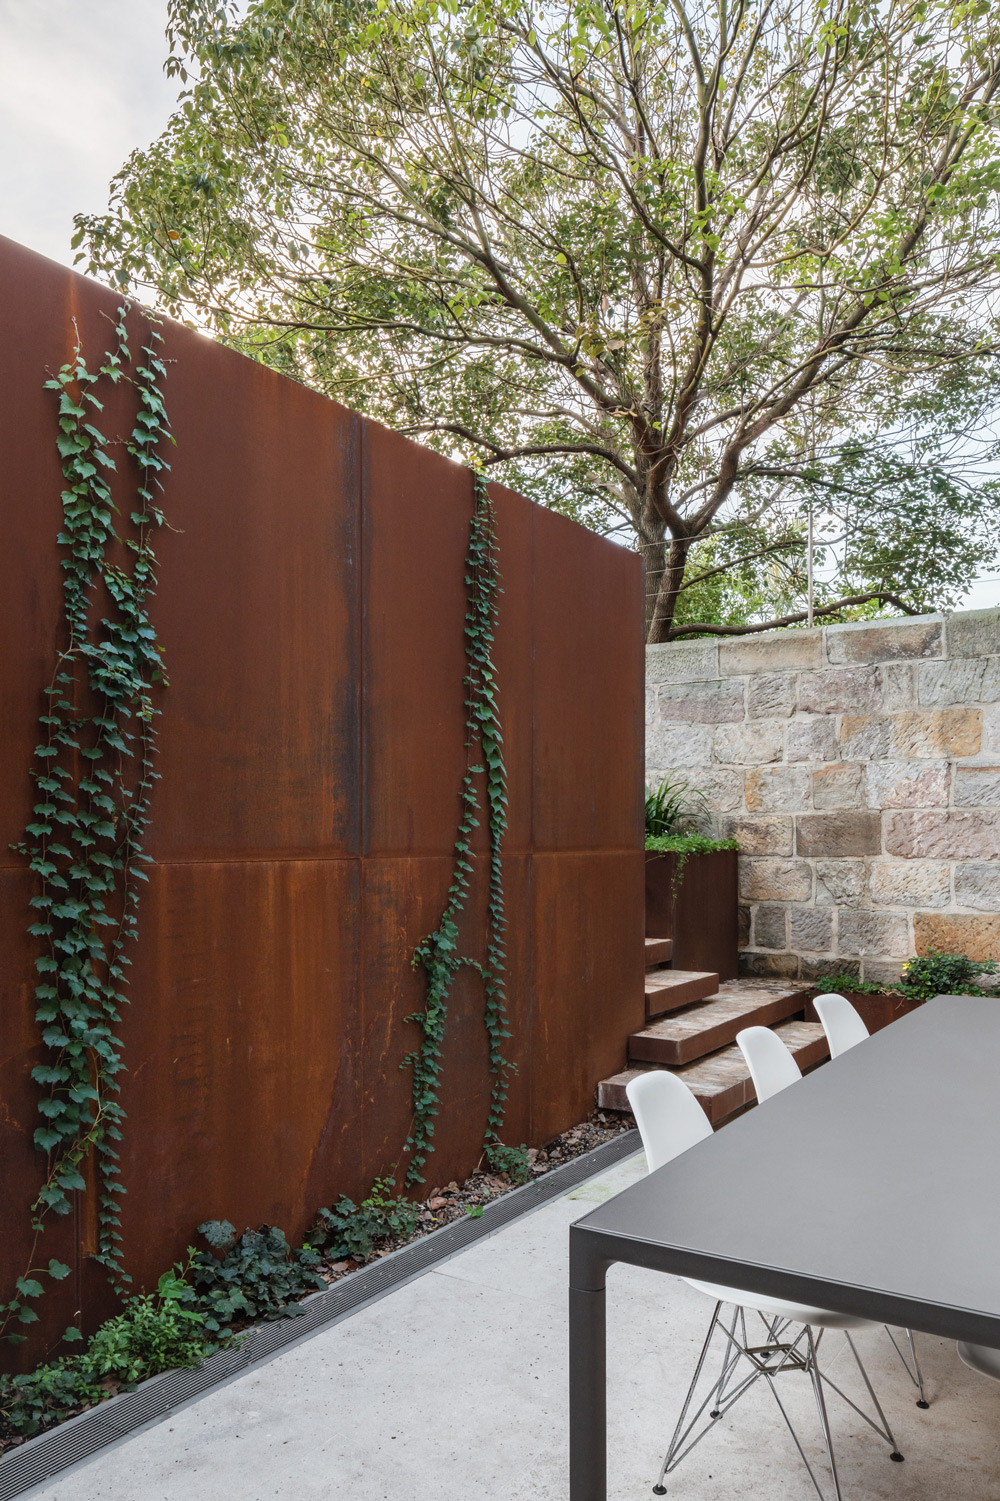 Glazed Tiles Cladding The Length Of The Wall Behind The Back Bench Subtly Echoes The Texture Of The Rough Hewn Limestone, While